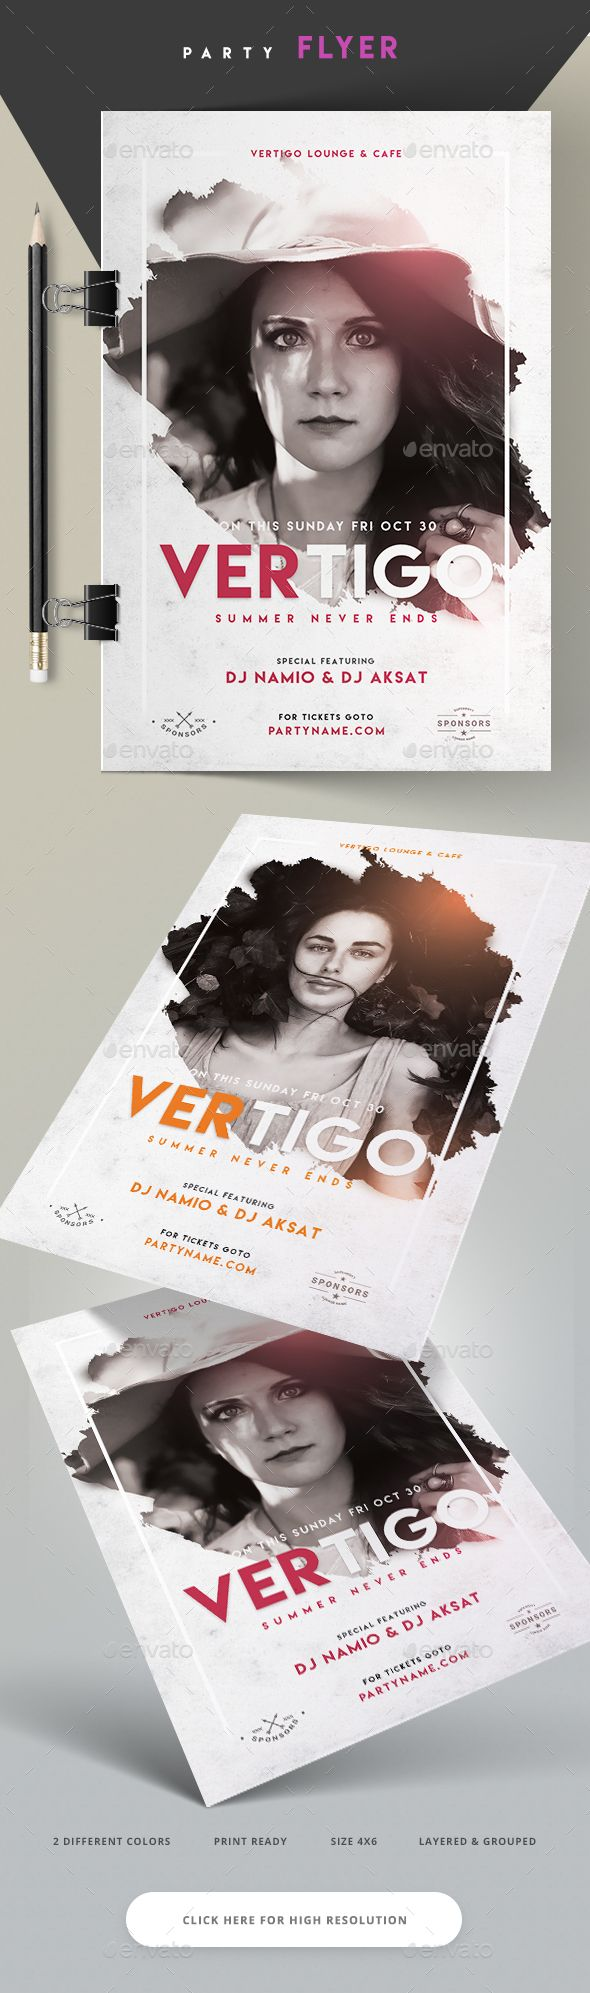 Vertigo lounge and Cafe Flyer  — PSD Template #event poster #party • Download ➝ https://graphicriver.net/item/vertigo-lounge-and-cafe-flyer/18377059?ref=pxcr